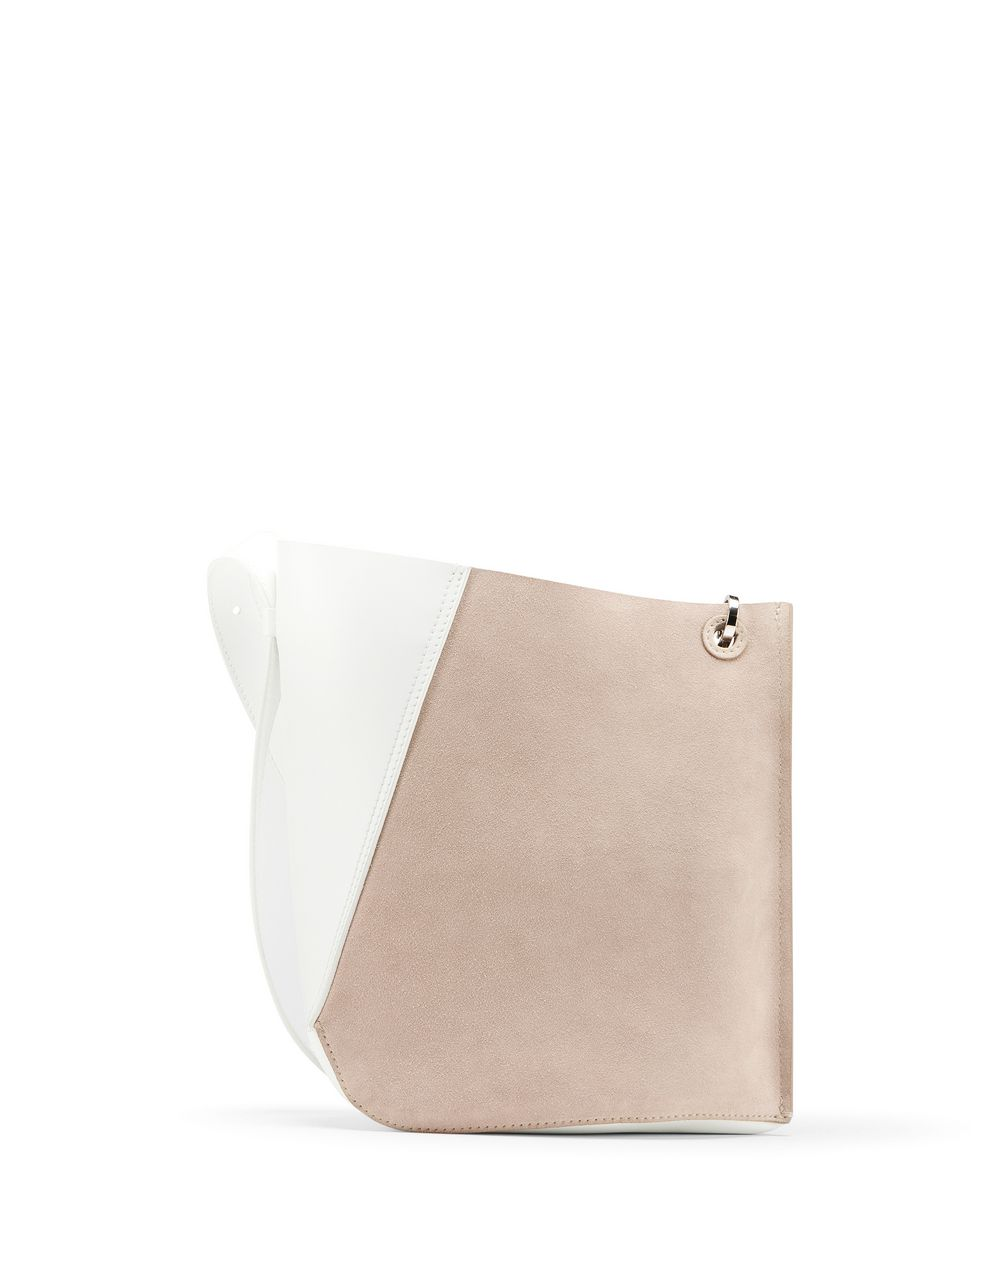 SMALL TWO-TONED HOOK BAG - Lanvin